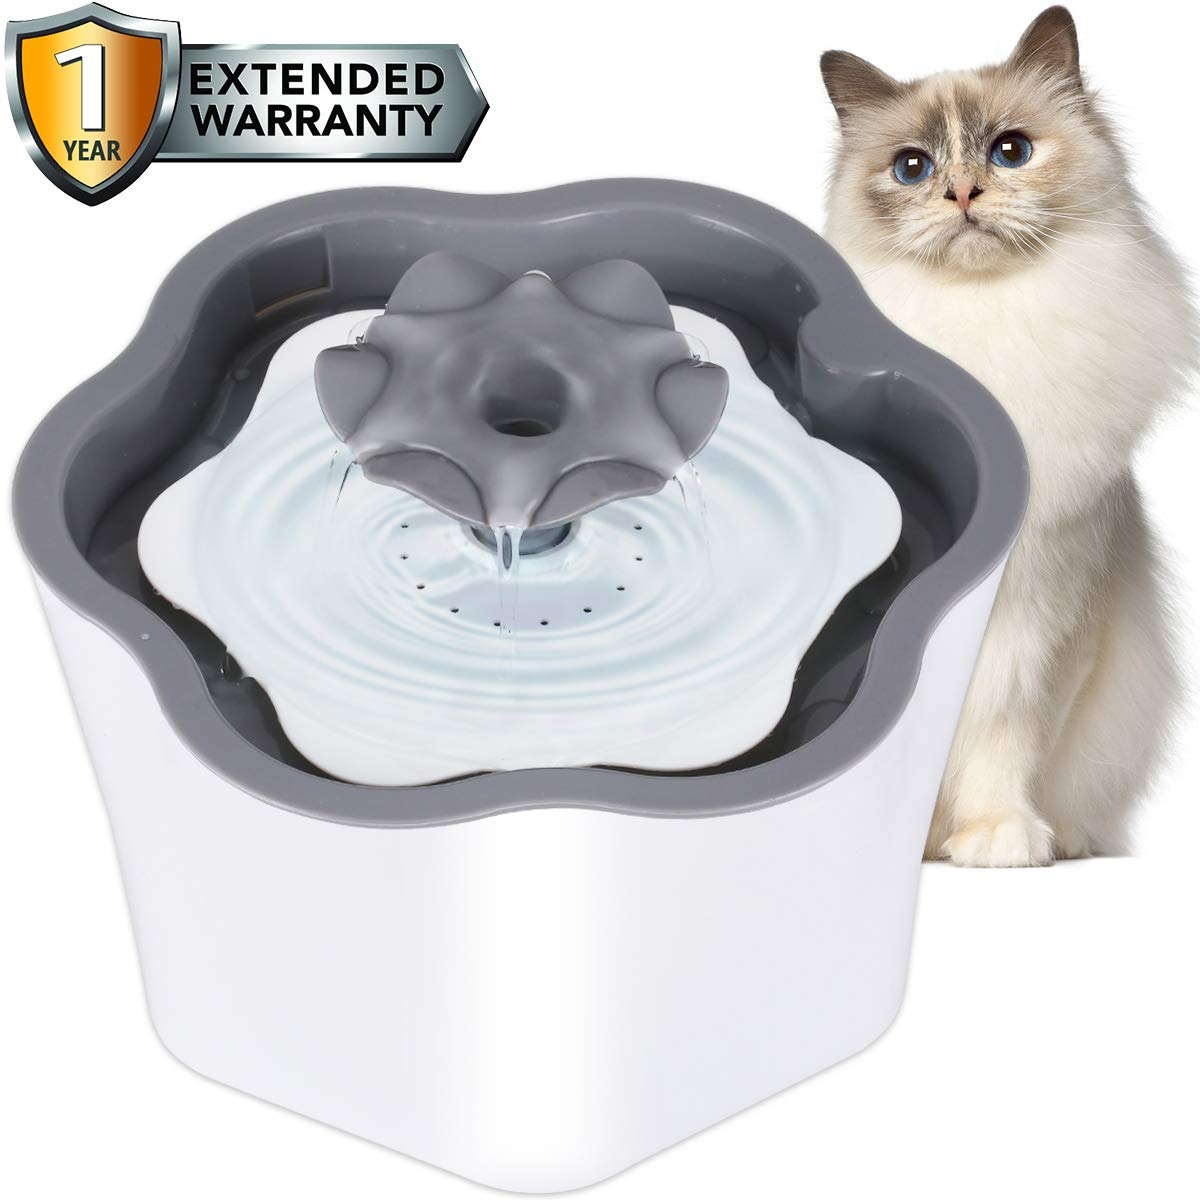 Cat Water Fountain with Filter 2L Intelligent Power Off Removable Washable Pump, Pet Water Dispenser Automatic Drinking Fountains for Cats Dogs Small Animals (Grey) by ENJOY PET